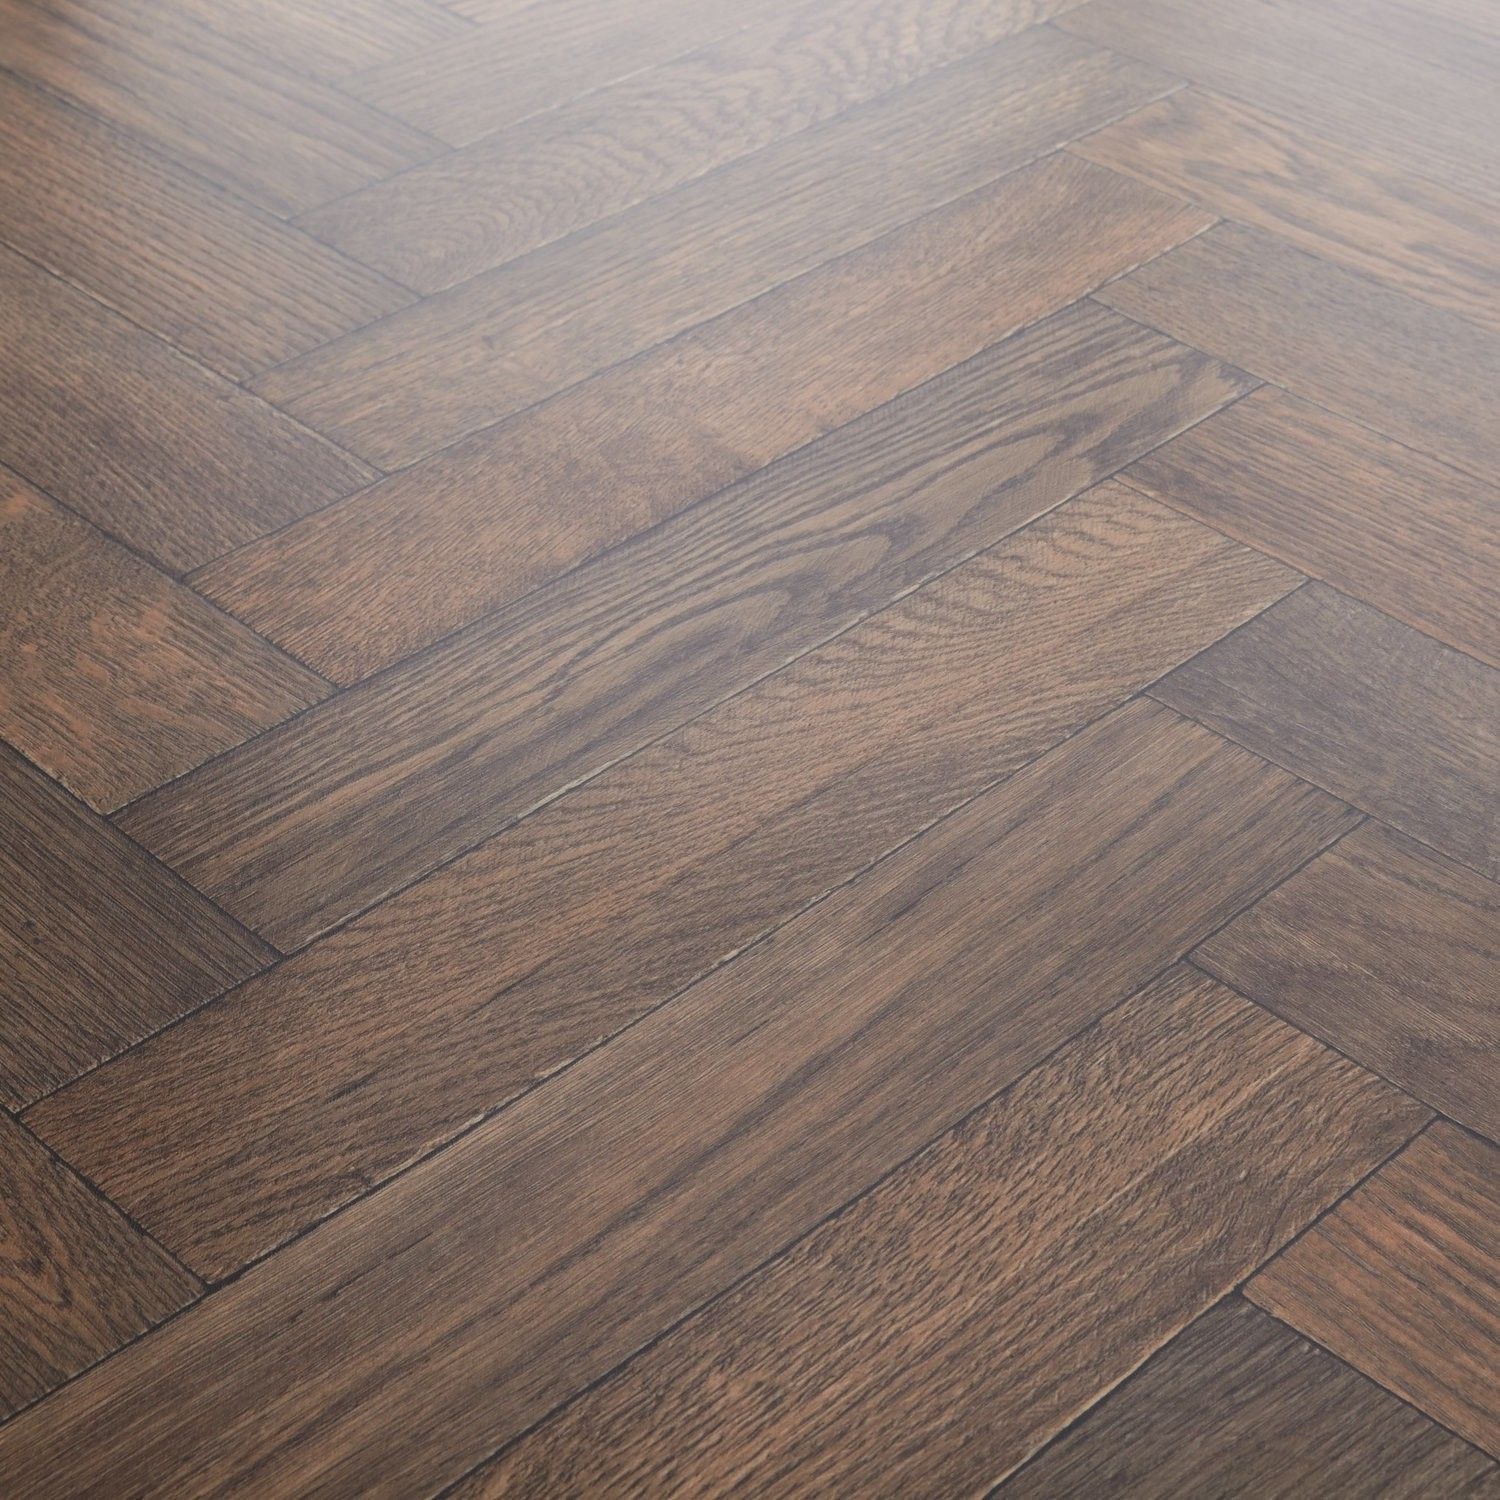 Rhino Champion Valley Antique Oak Parquet Vinyl Flooring